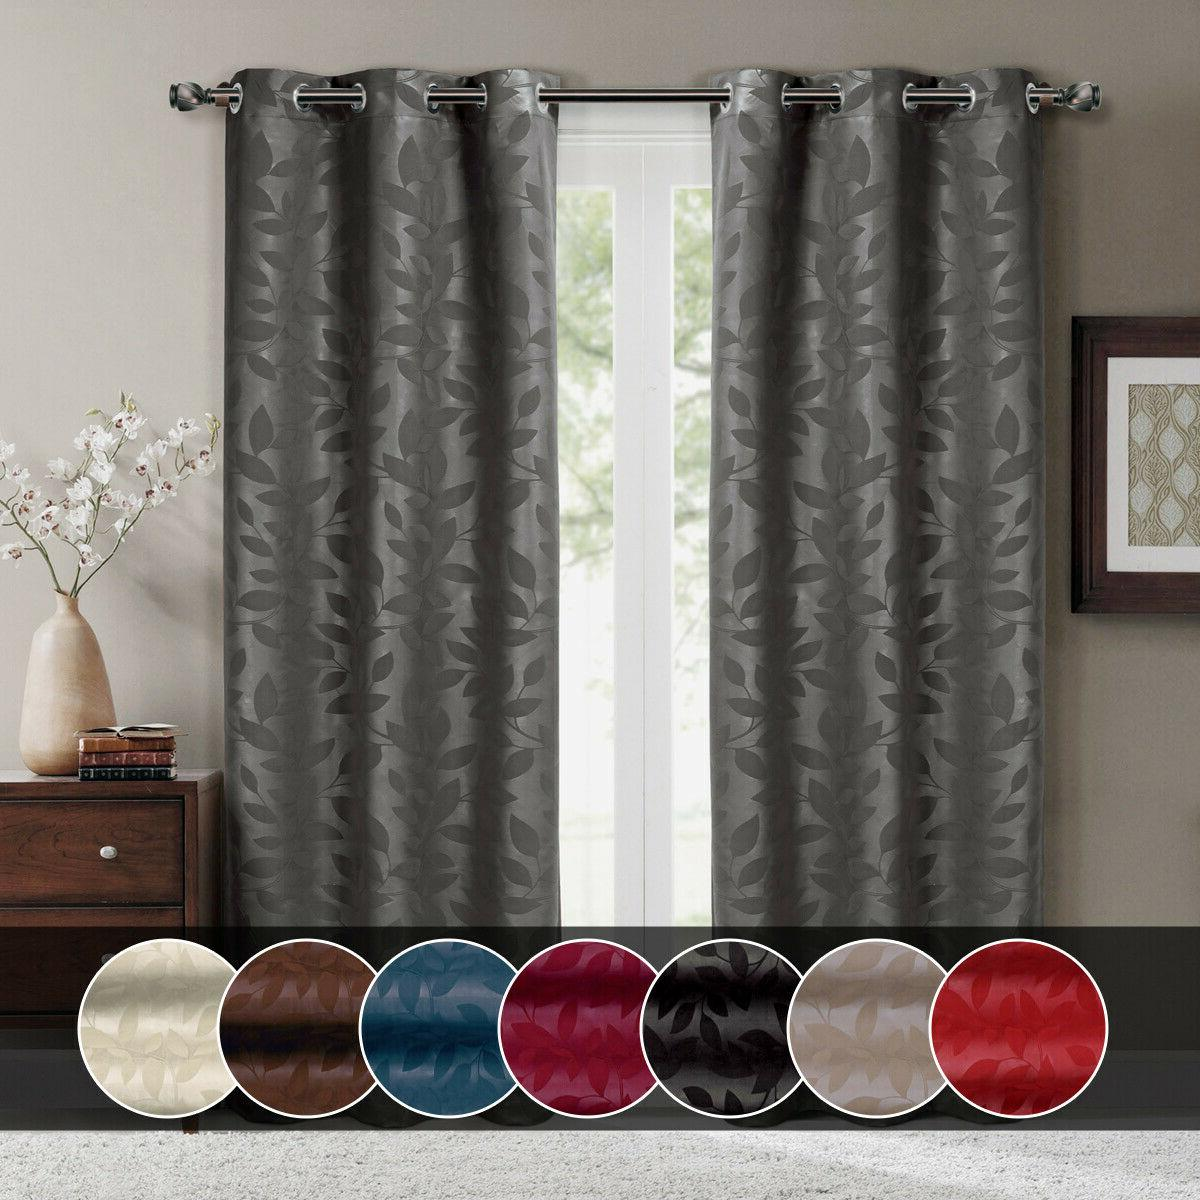 Virginia Blackout Leafy Weave Curtains Modern Grommets Set o